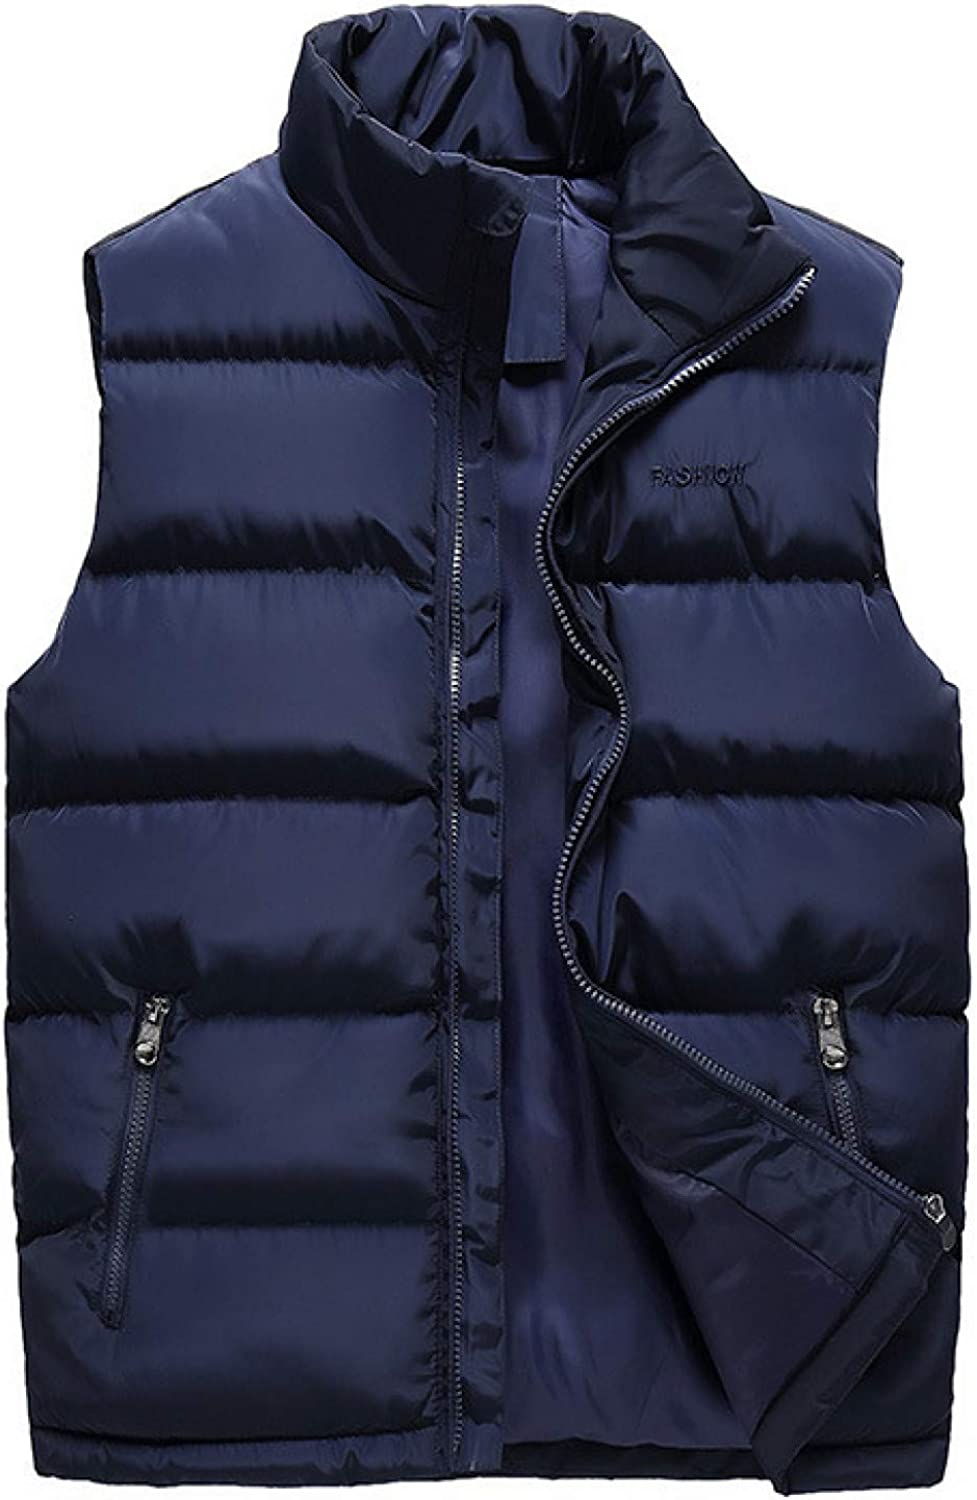 Men's Lightweight Packable Down Puffer Vest Water-Resistant Down Coat Stand Collar Quilted Sleeveless for Outdoor Travel